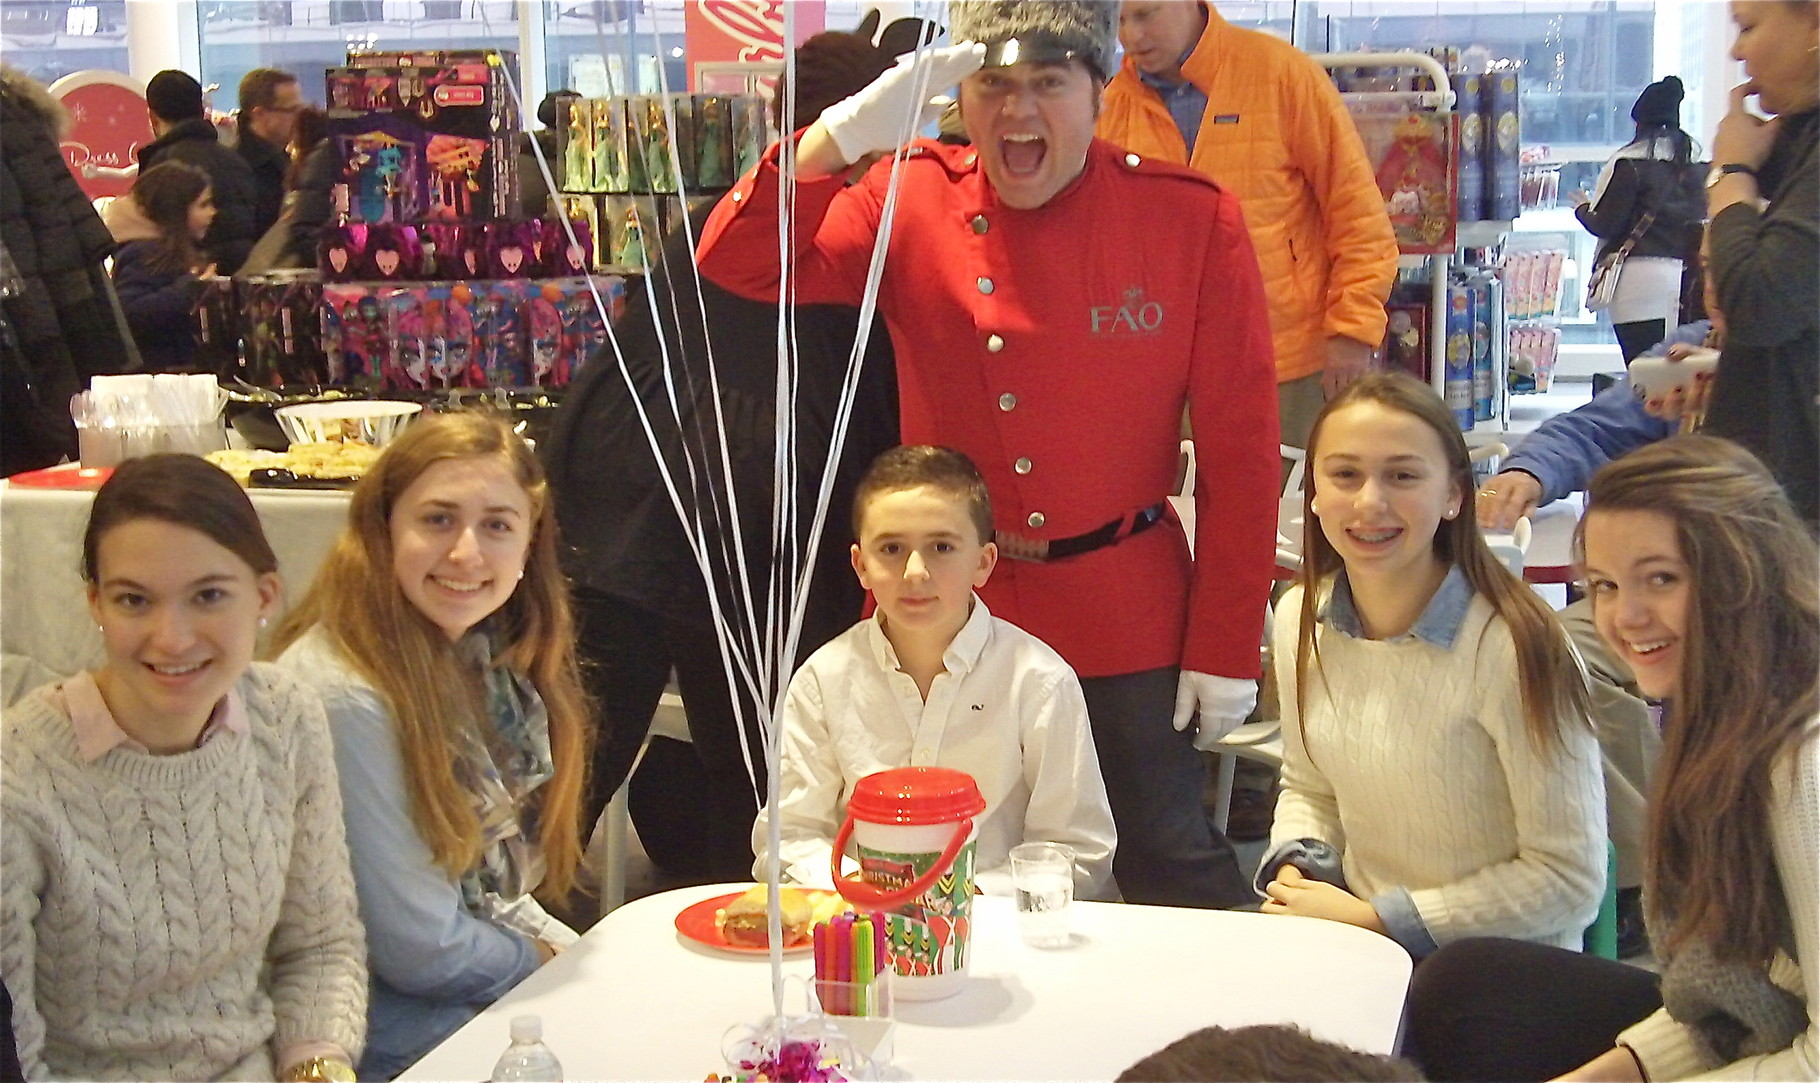 Ellie, Emma, Stuart 3d, Eric the FAO soldier, Gabby, Kate